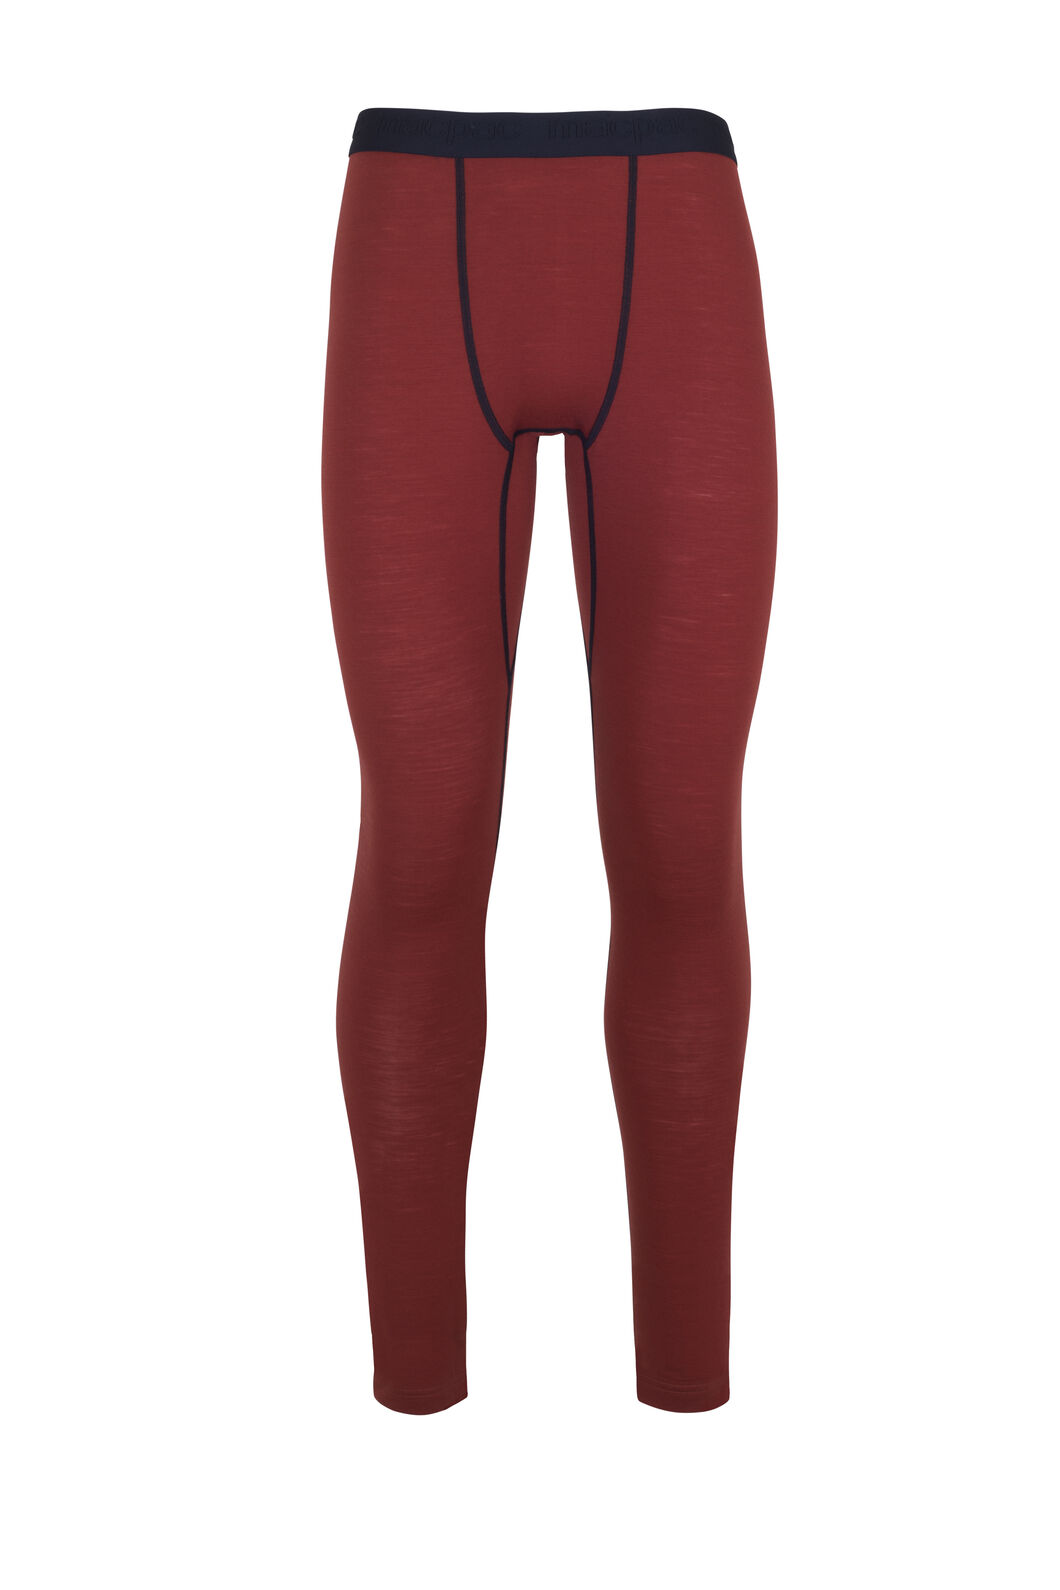 Macpac 180 Merino Long Johns — Men's, Red Ochre, hi-res